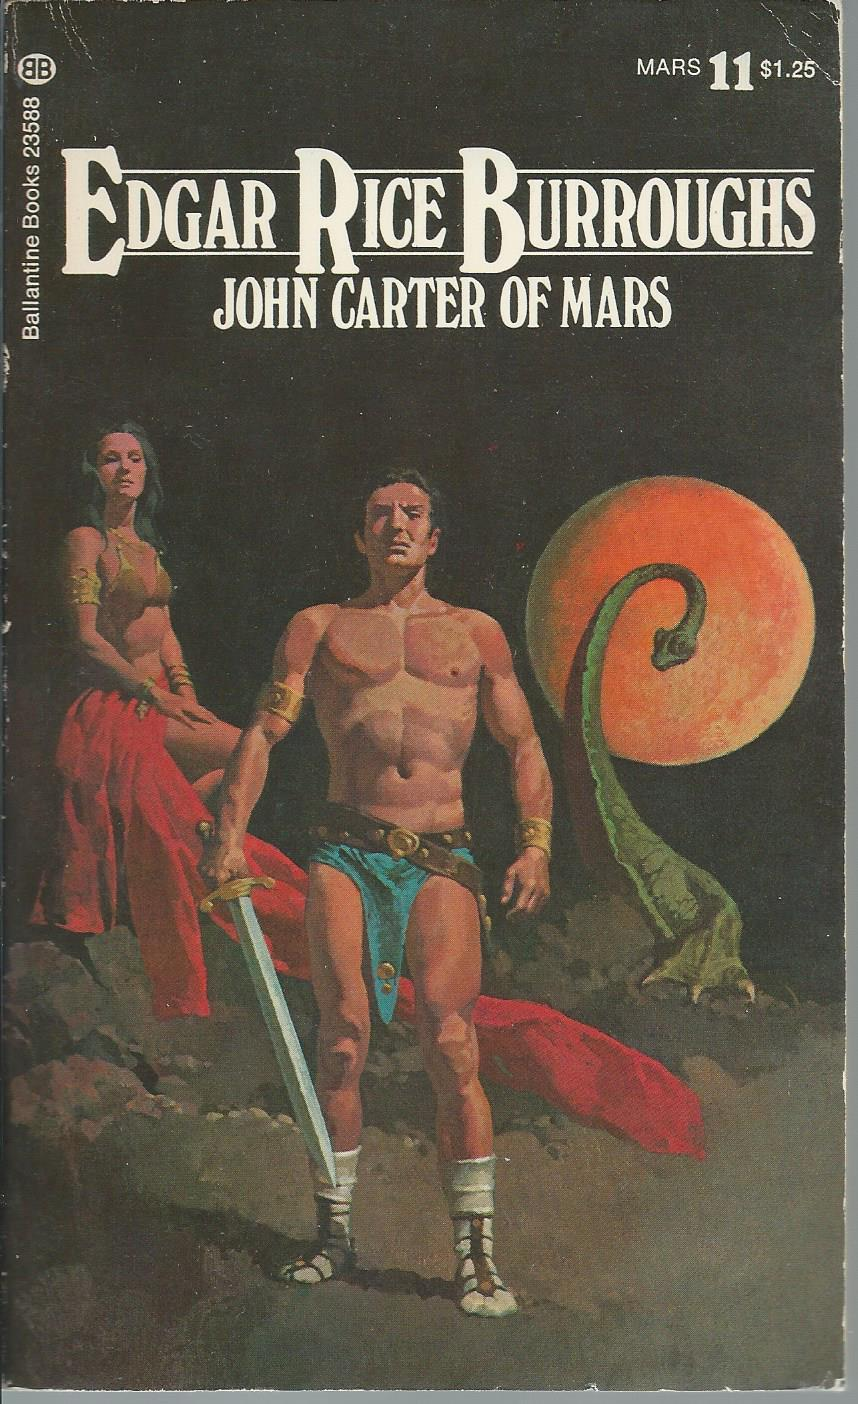 edgar rice burroughs - john carter of mars - First Edition - AbeBooks